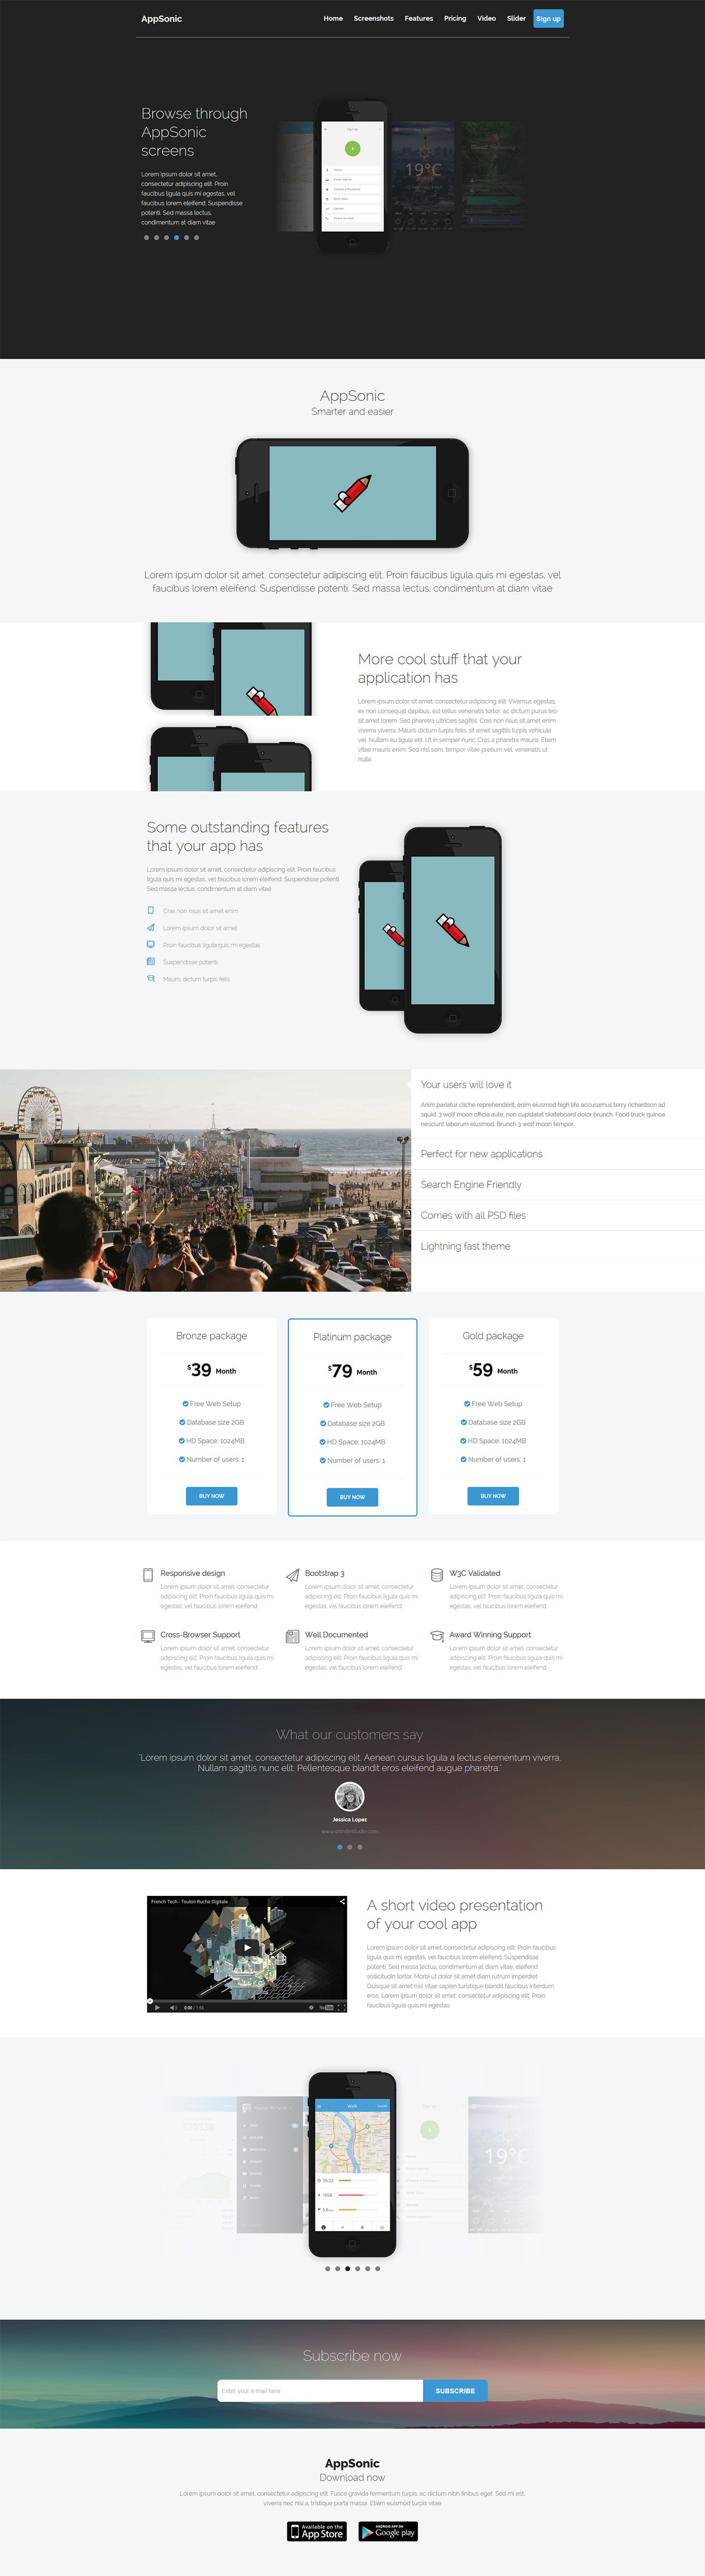 AppSonic Clean HTML Business App Landing Page for iPhone